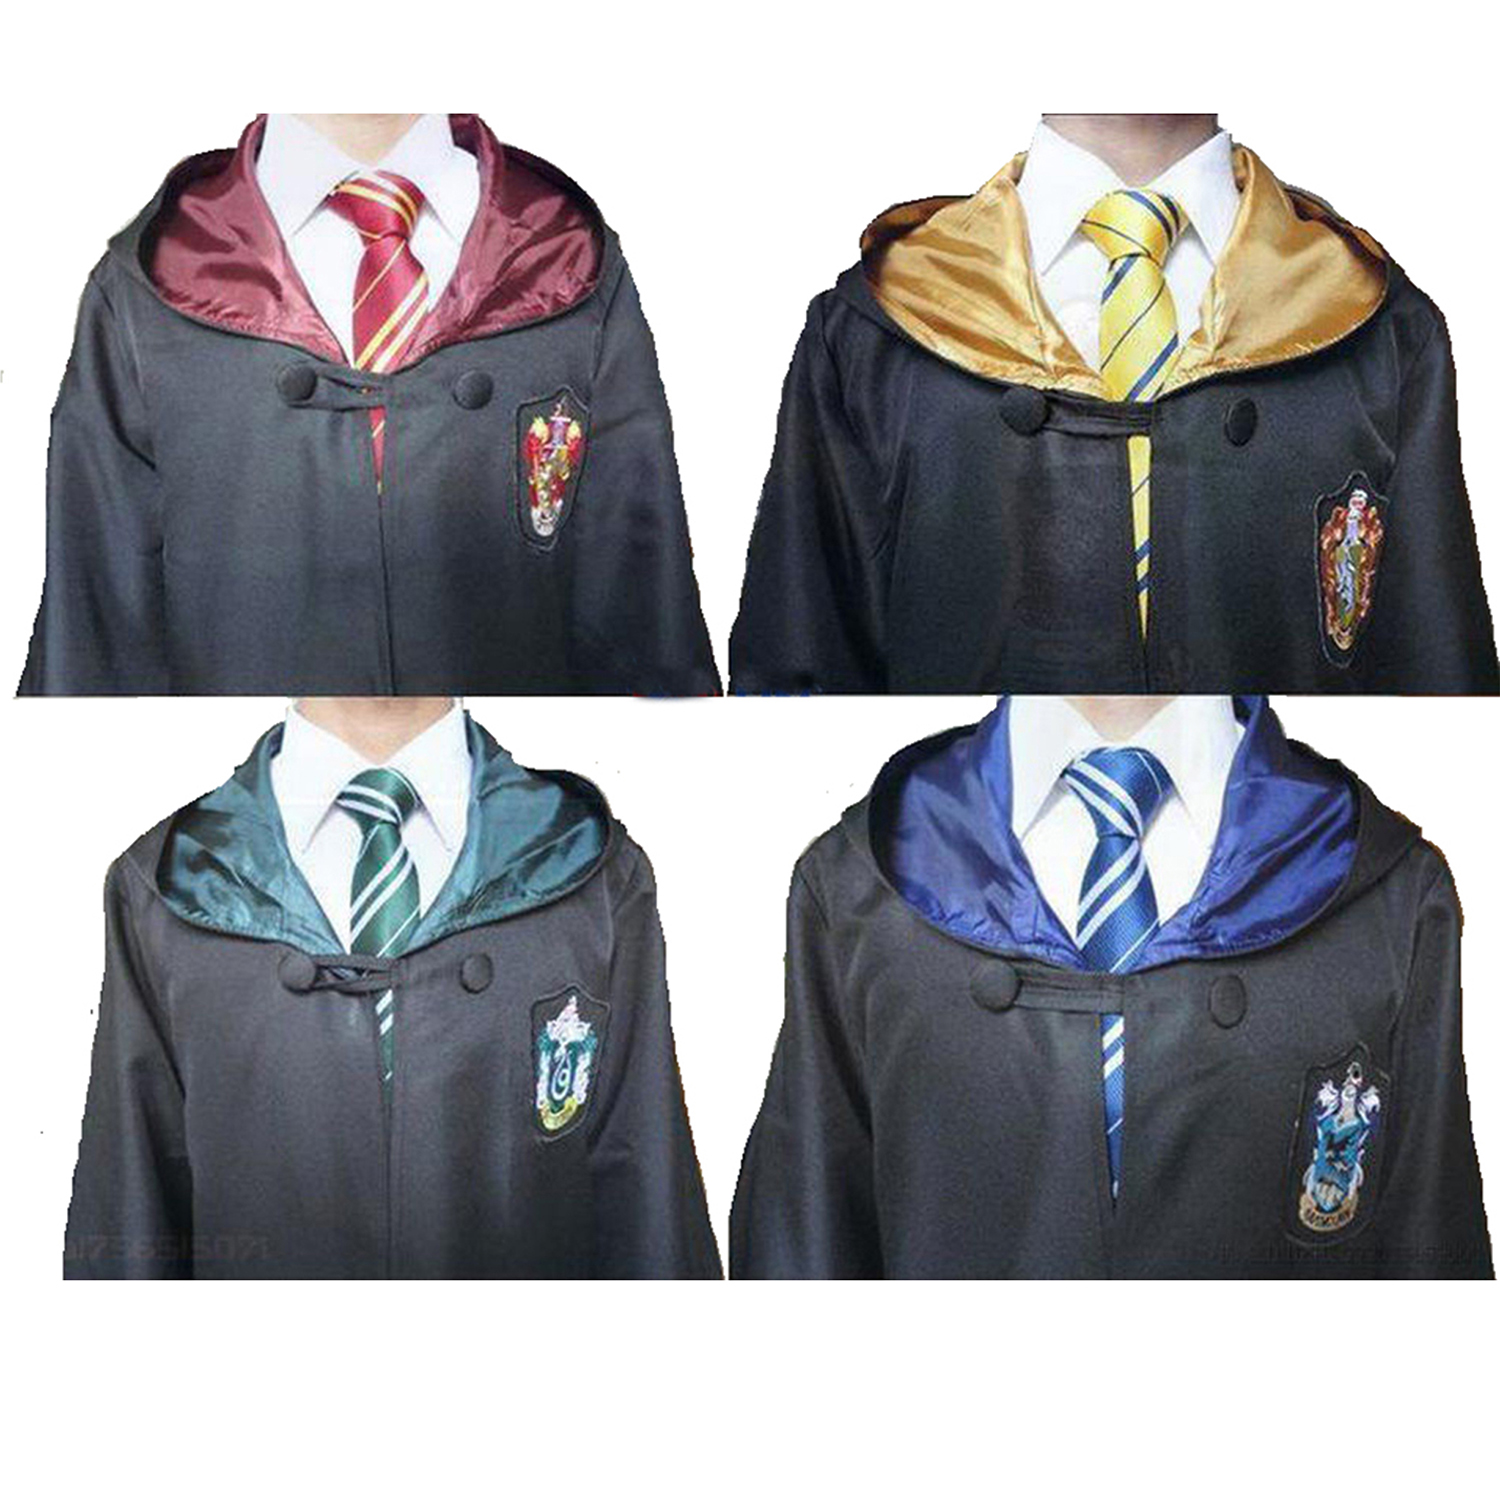 Harri Potter Robe Gryffindor/SlytherinRavenclaw/Hufflepuff Cosplay Costumes Kids Adult Cape cloak 11 SIZE Halloween Gift